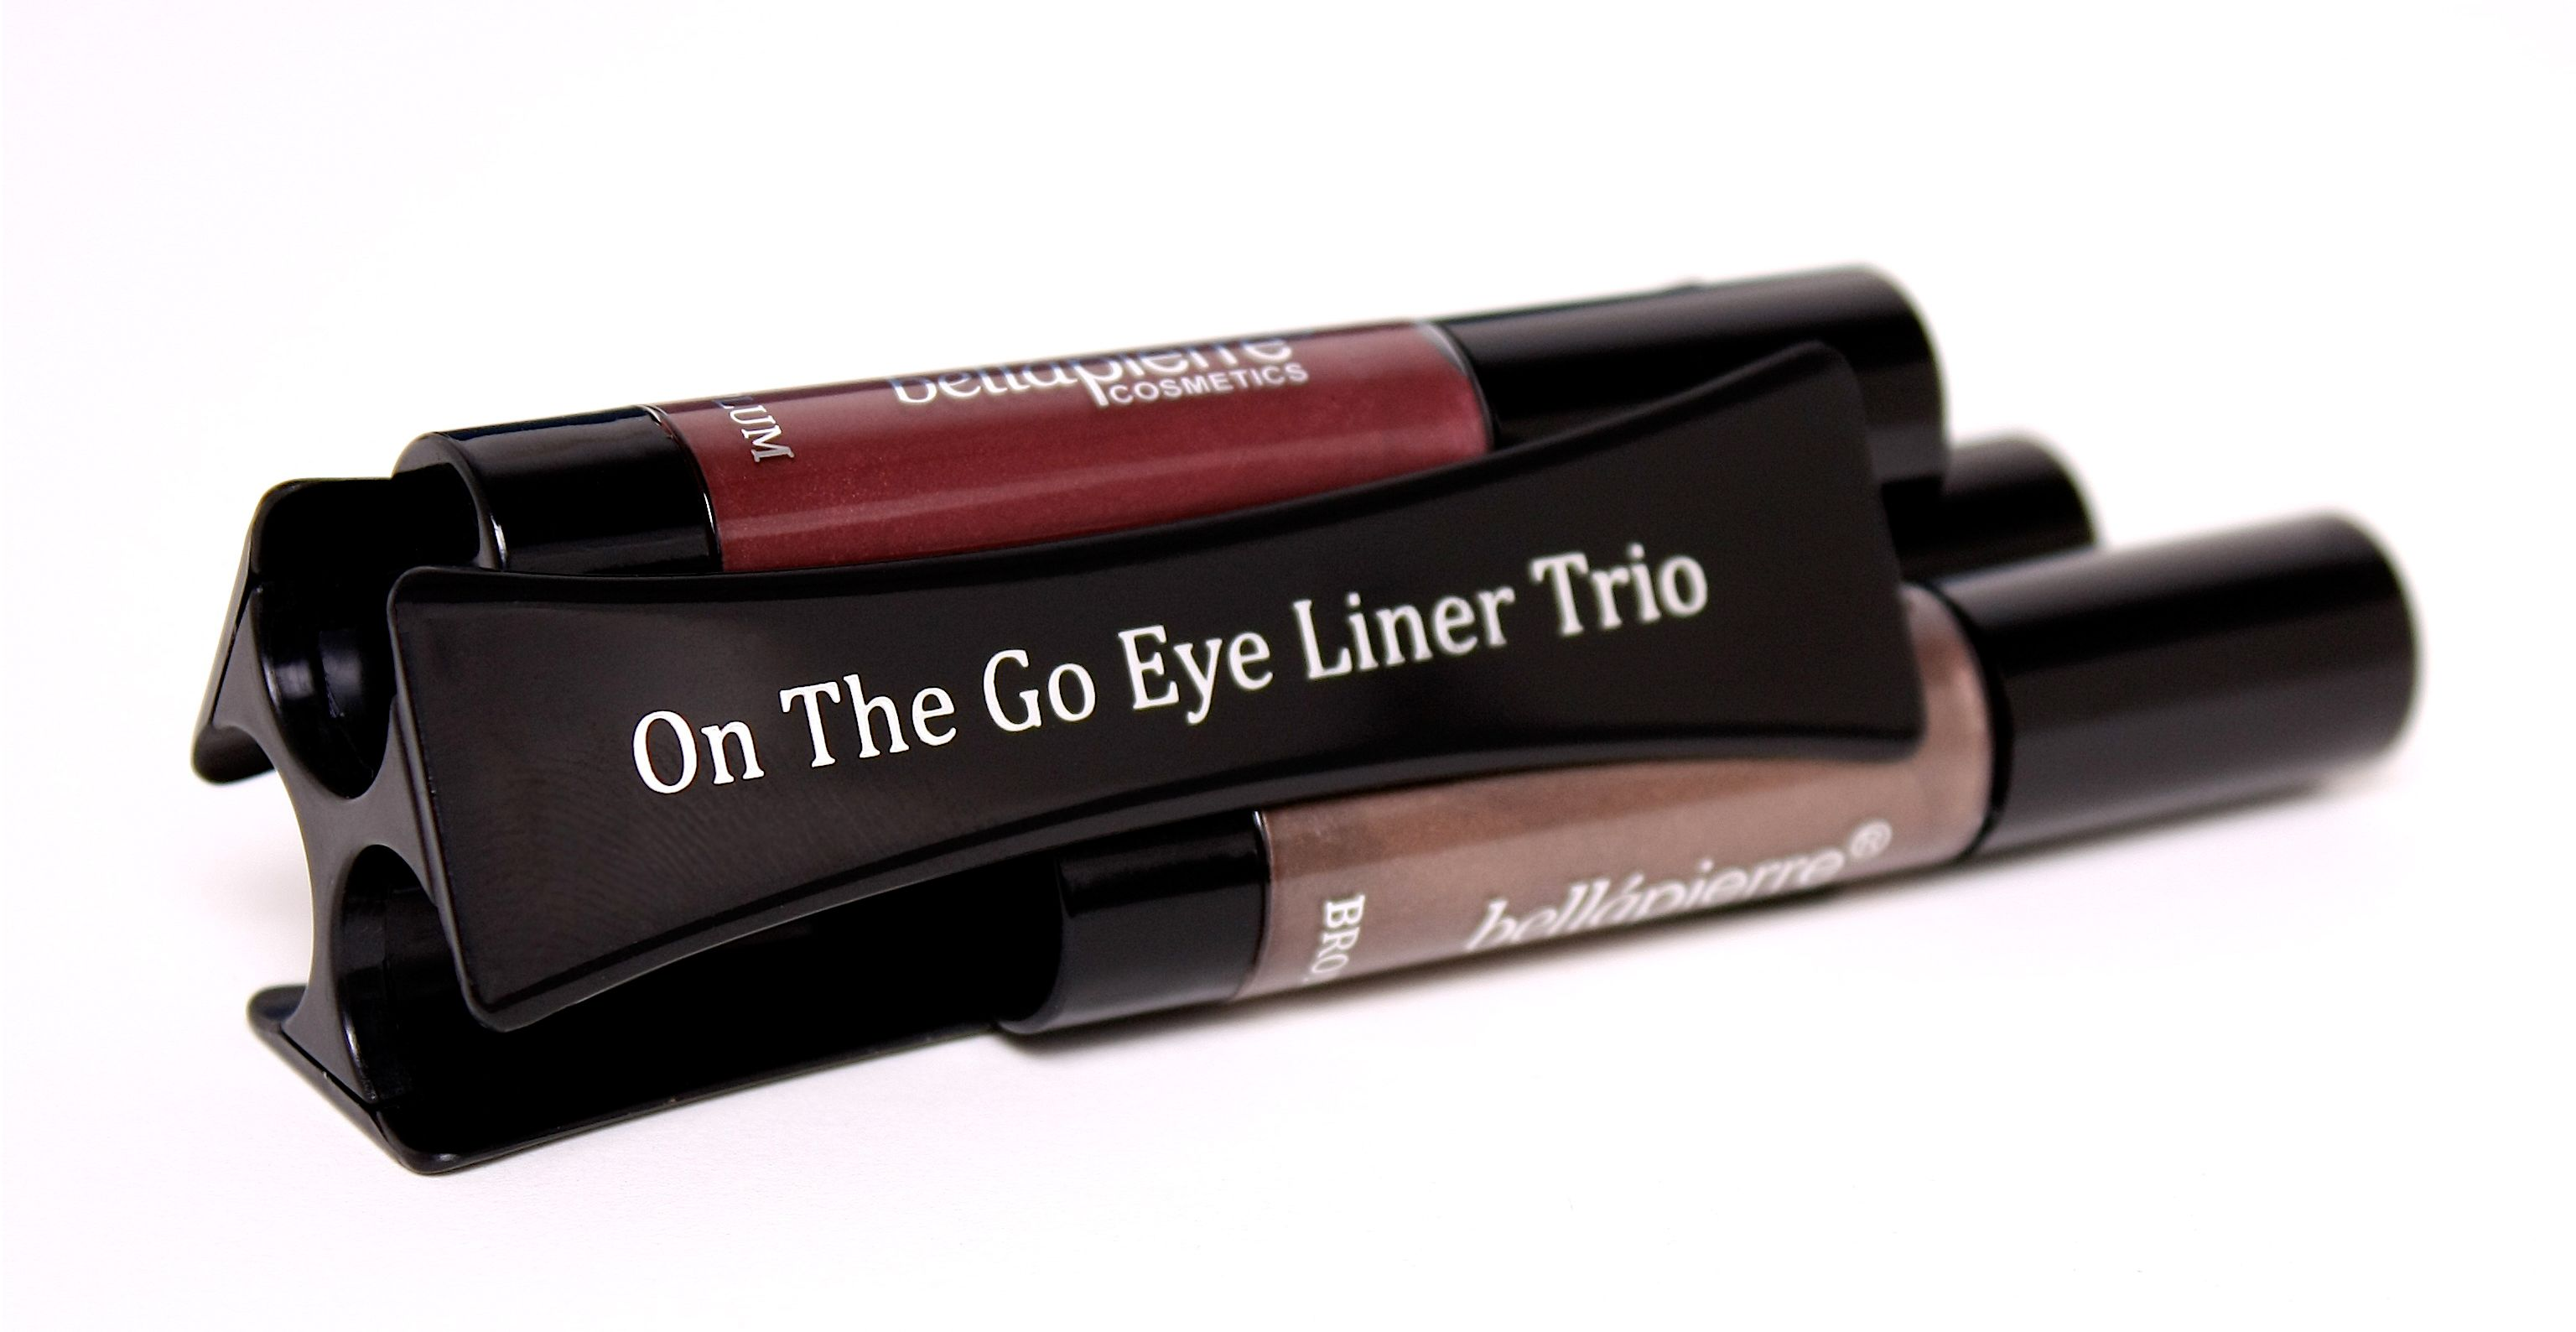 On The Go Eyeliner Trio